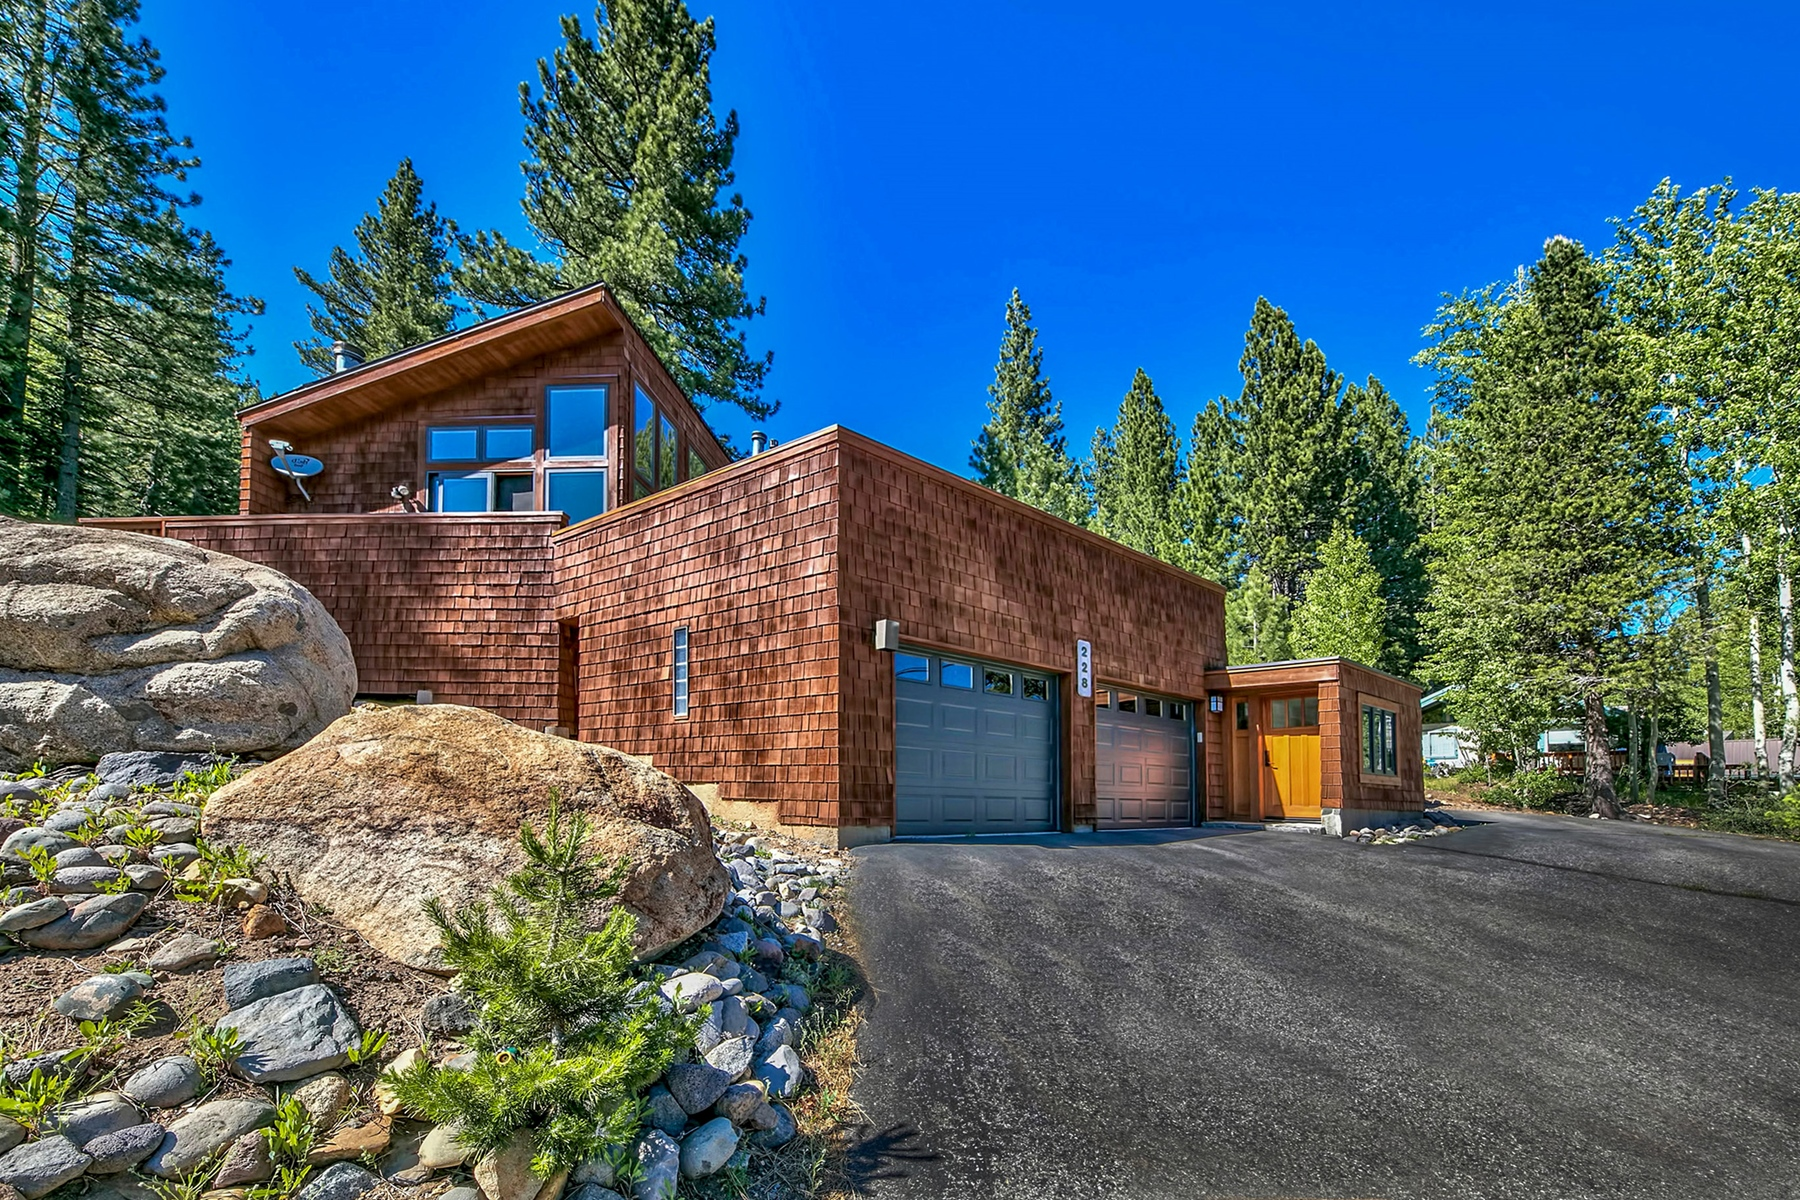 Additional photo for property listing at 228 Tiger Trail Road, Olympic Valley CA 96146 228 Tiger Tail Road Olympic Valley, California 96146 United States